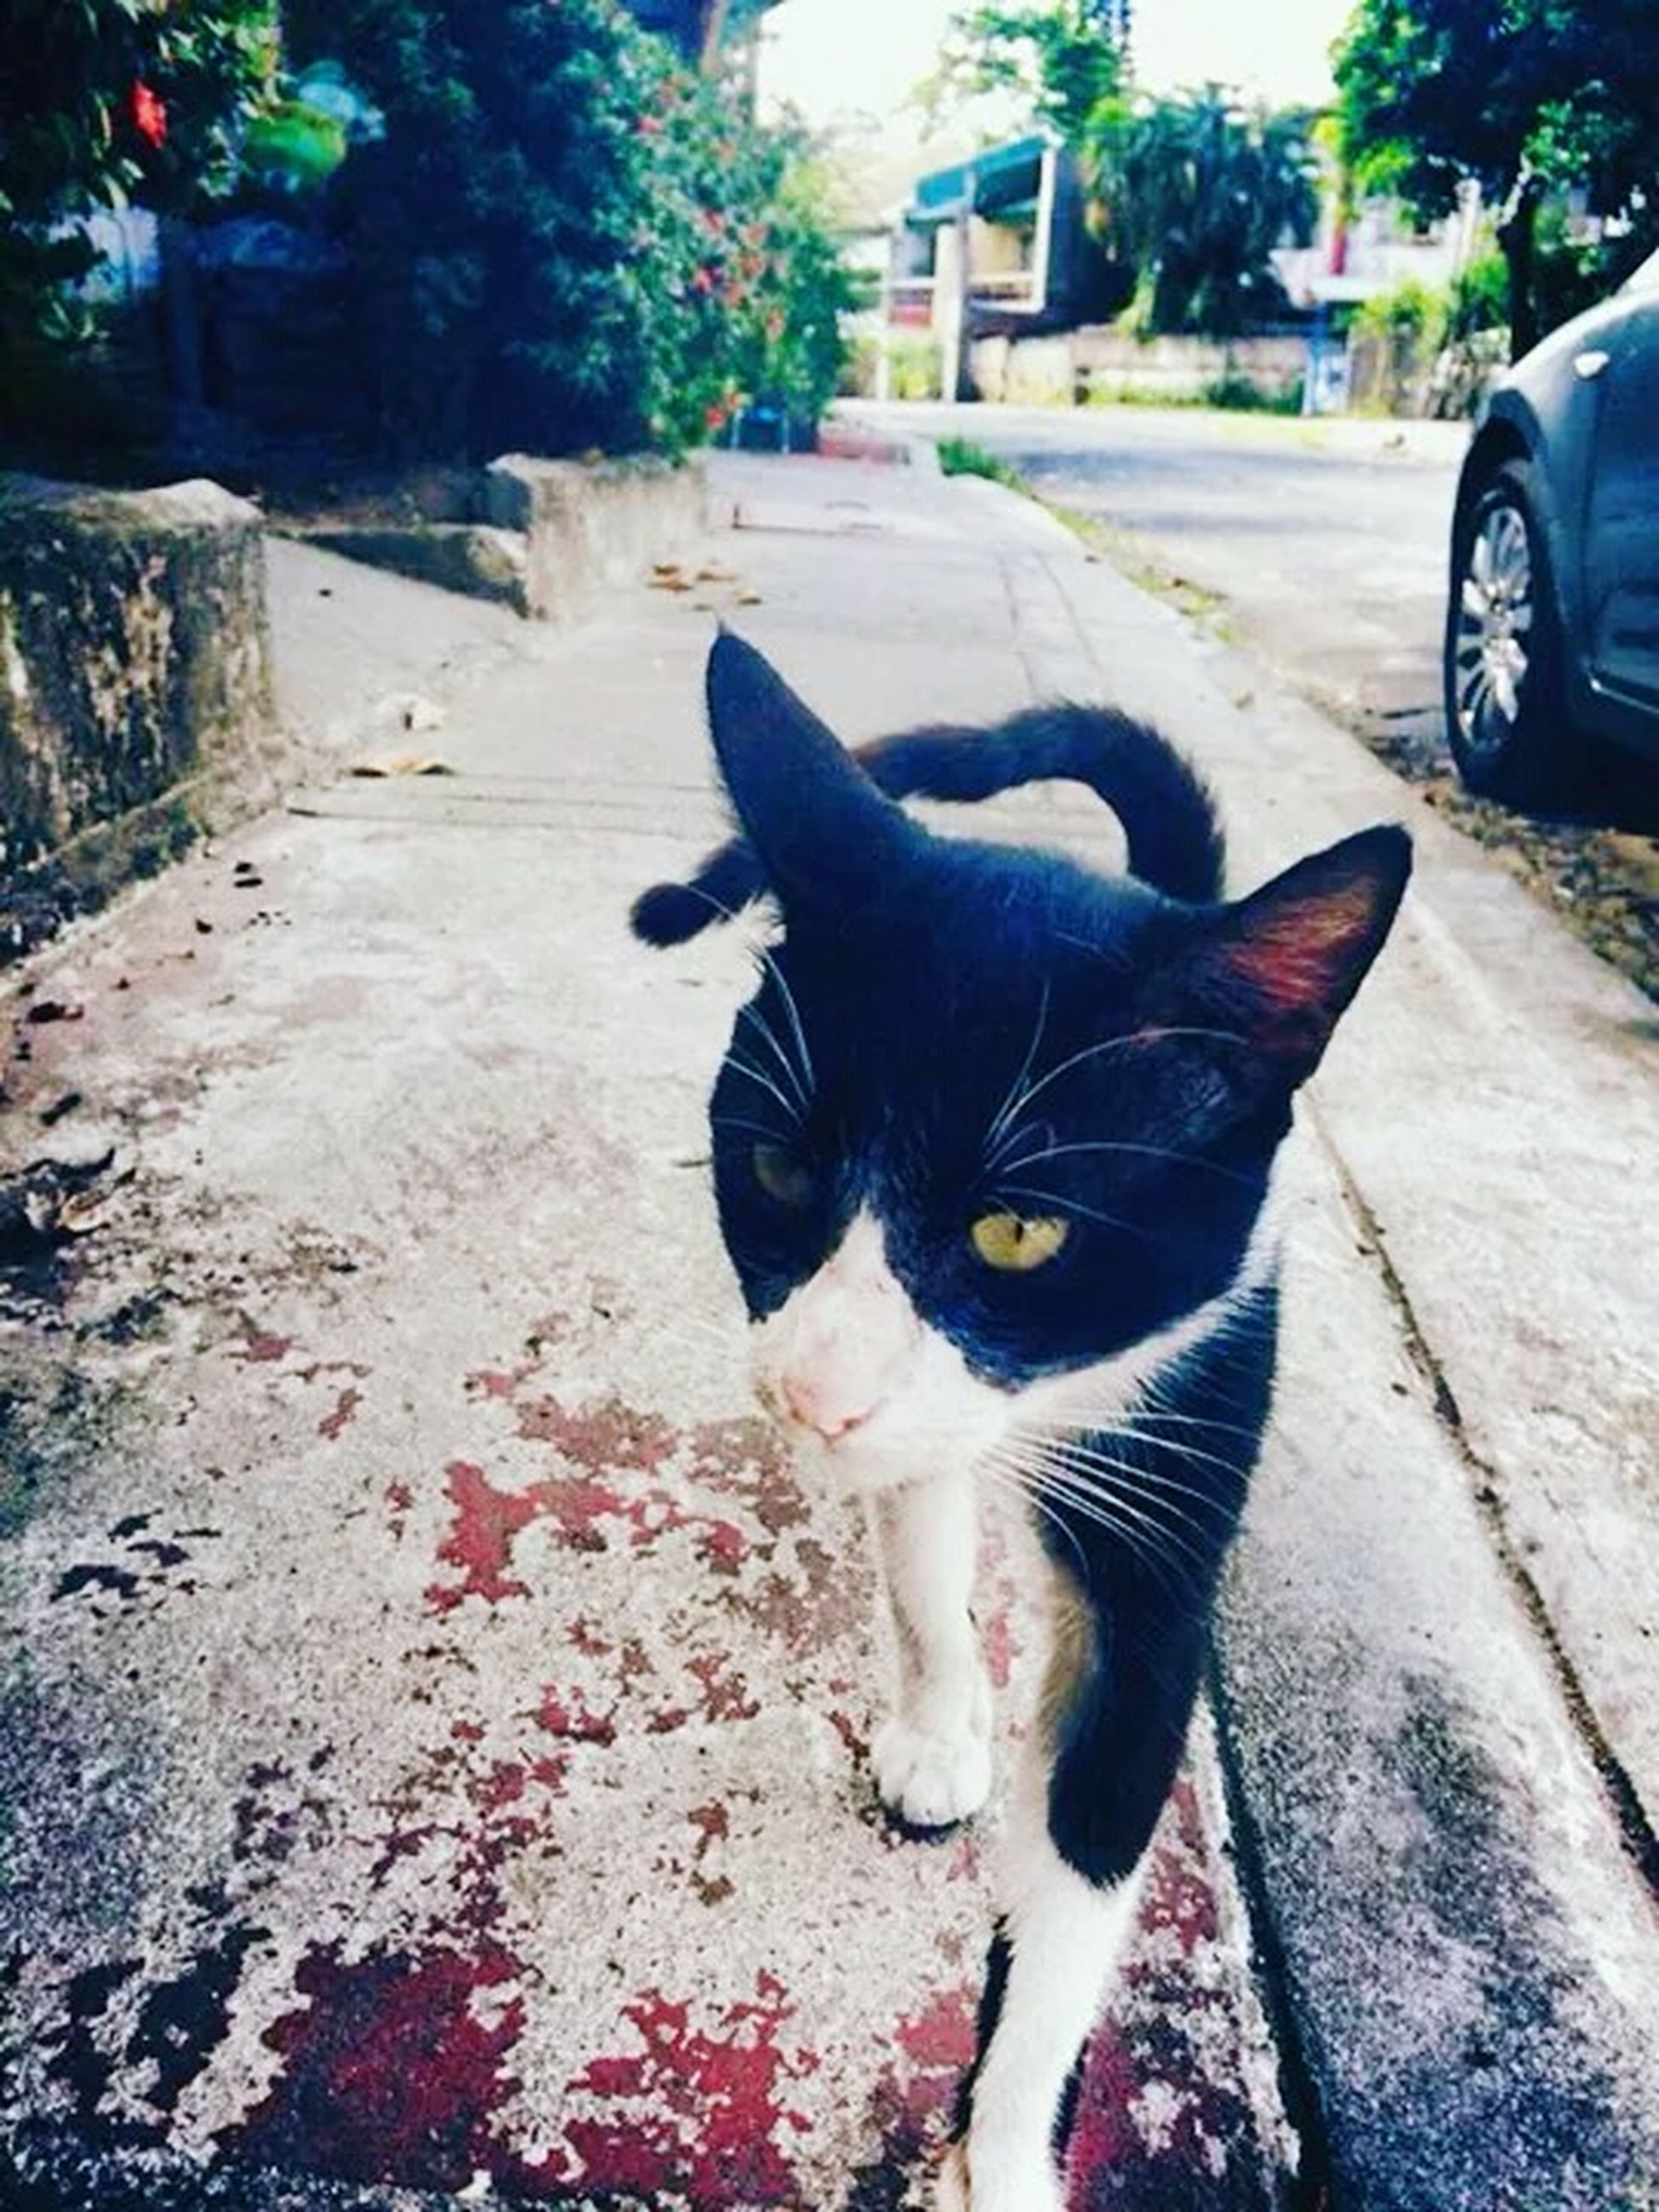 pets, one animal, domestic animals, animal themes, mammal, domestic cat, street, cat, car, land vehicle, feline, transportation, portrait, looking at camera, dog, road, mode of transport, whisker, outdoors, black color